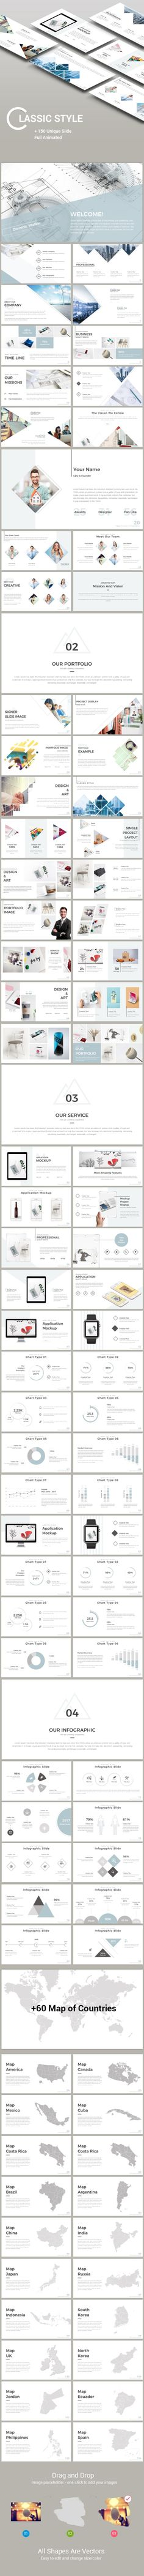 Classic Style Presentation Templates - #PowerPoint Templates Presentation Templates Download here: https://graphicriver.net/item/classic-style-presentation-templates/19973830?ref=alena994